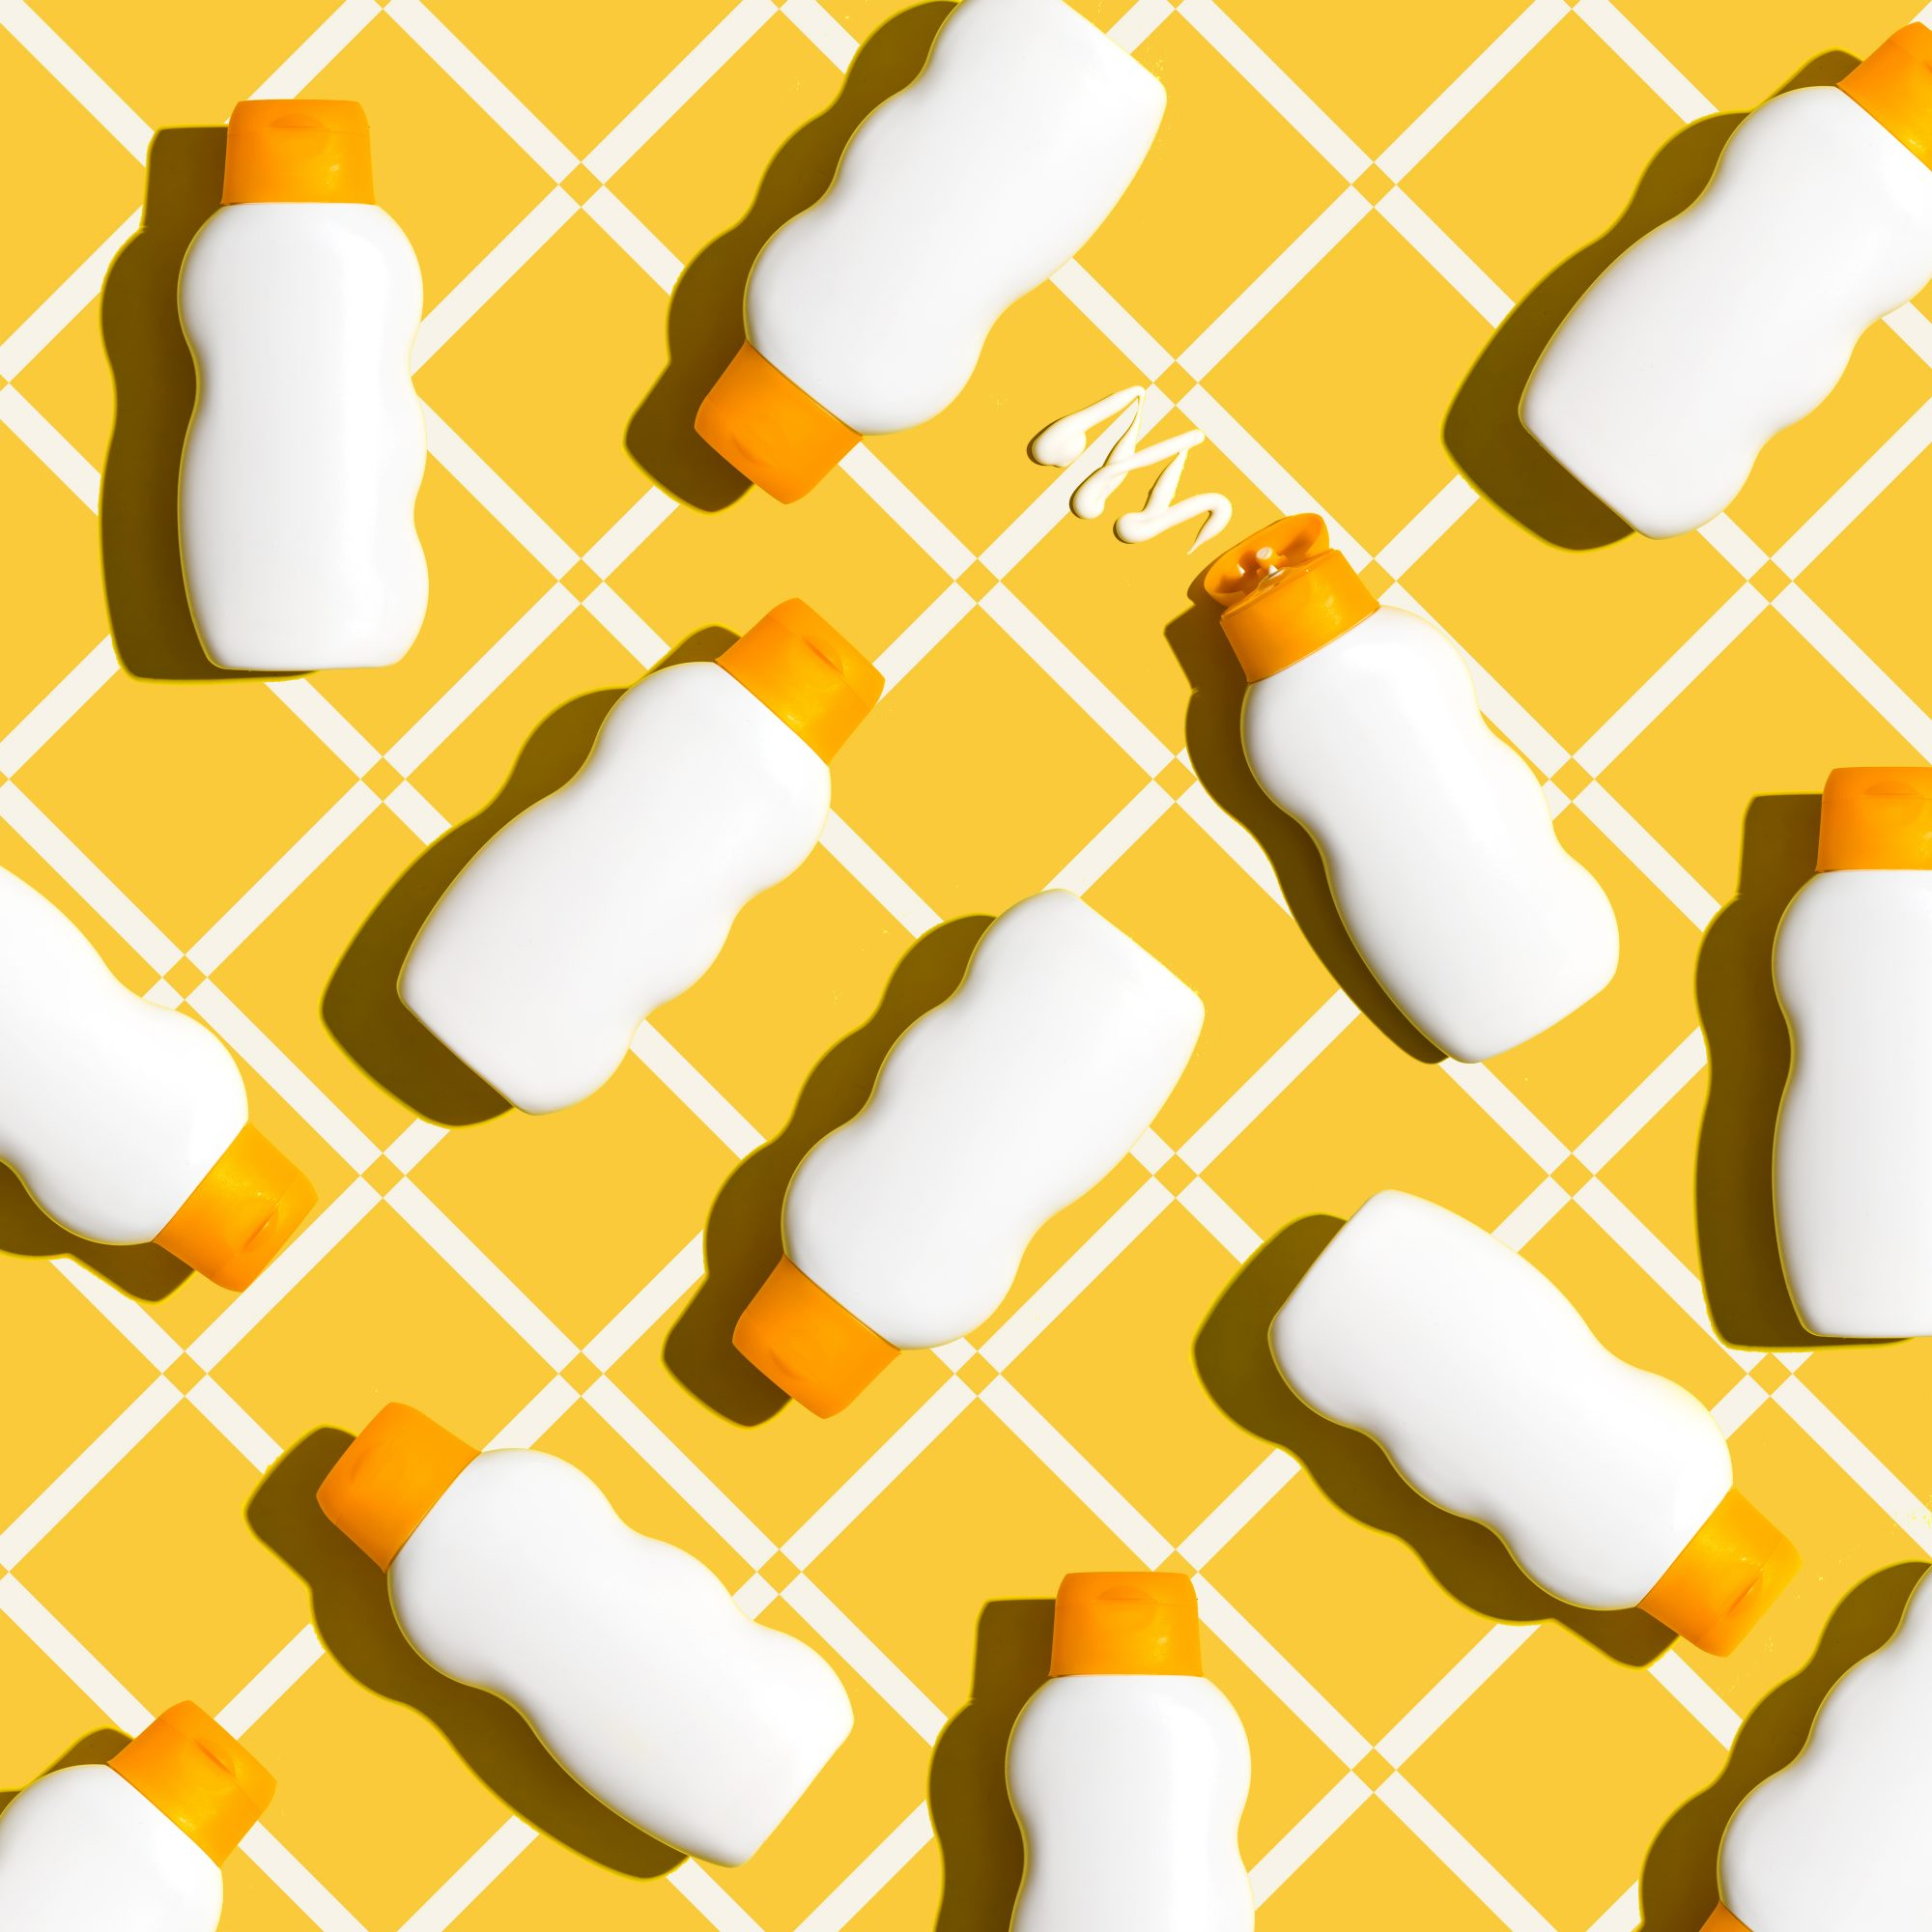 Things You Can Spring-Clean From Your Bathroom, sunscreen bottles